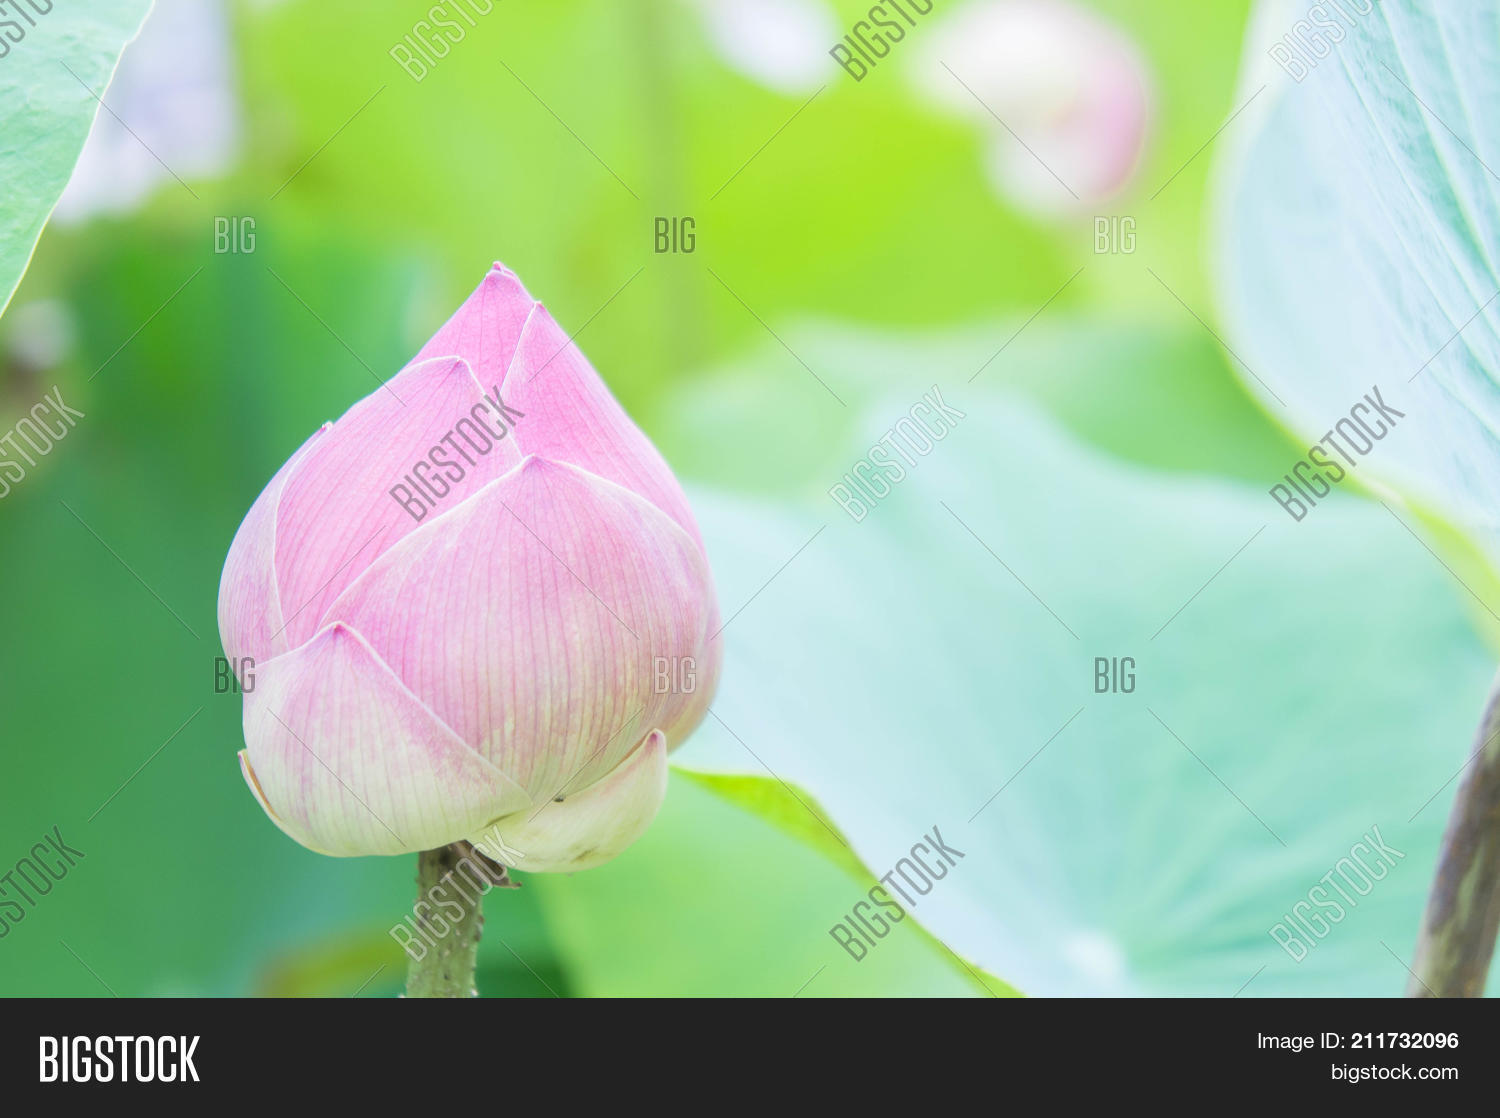 Natural Lotus Flower Image Photo Free Trial Bigstock